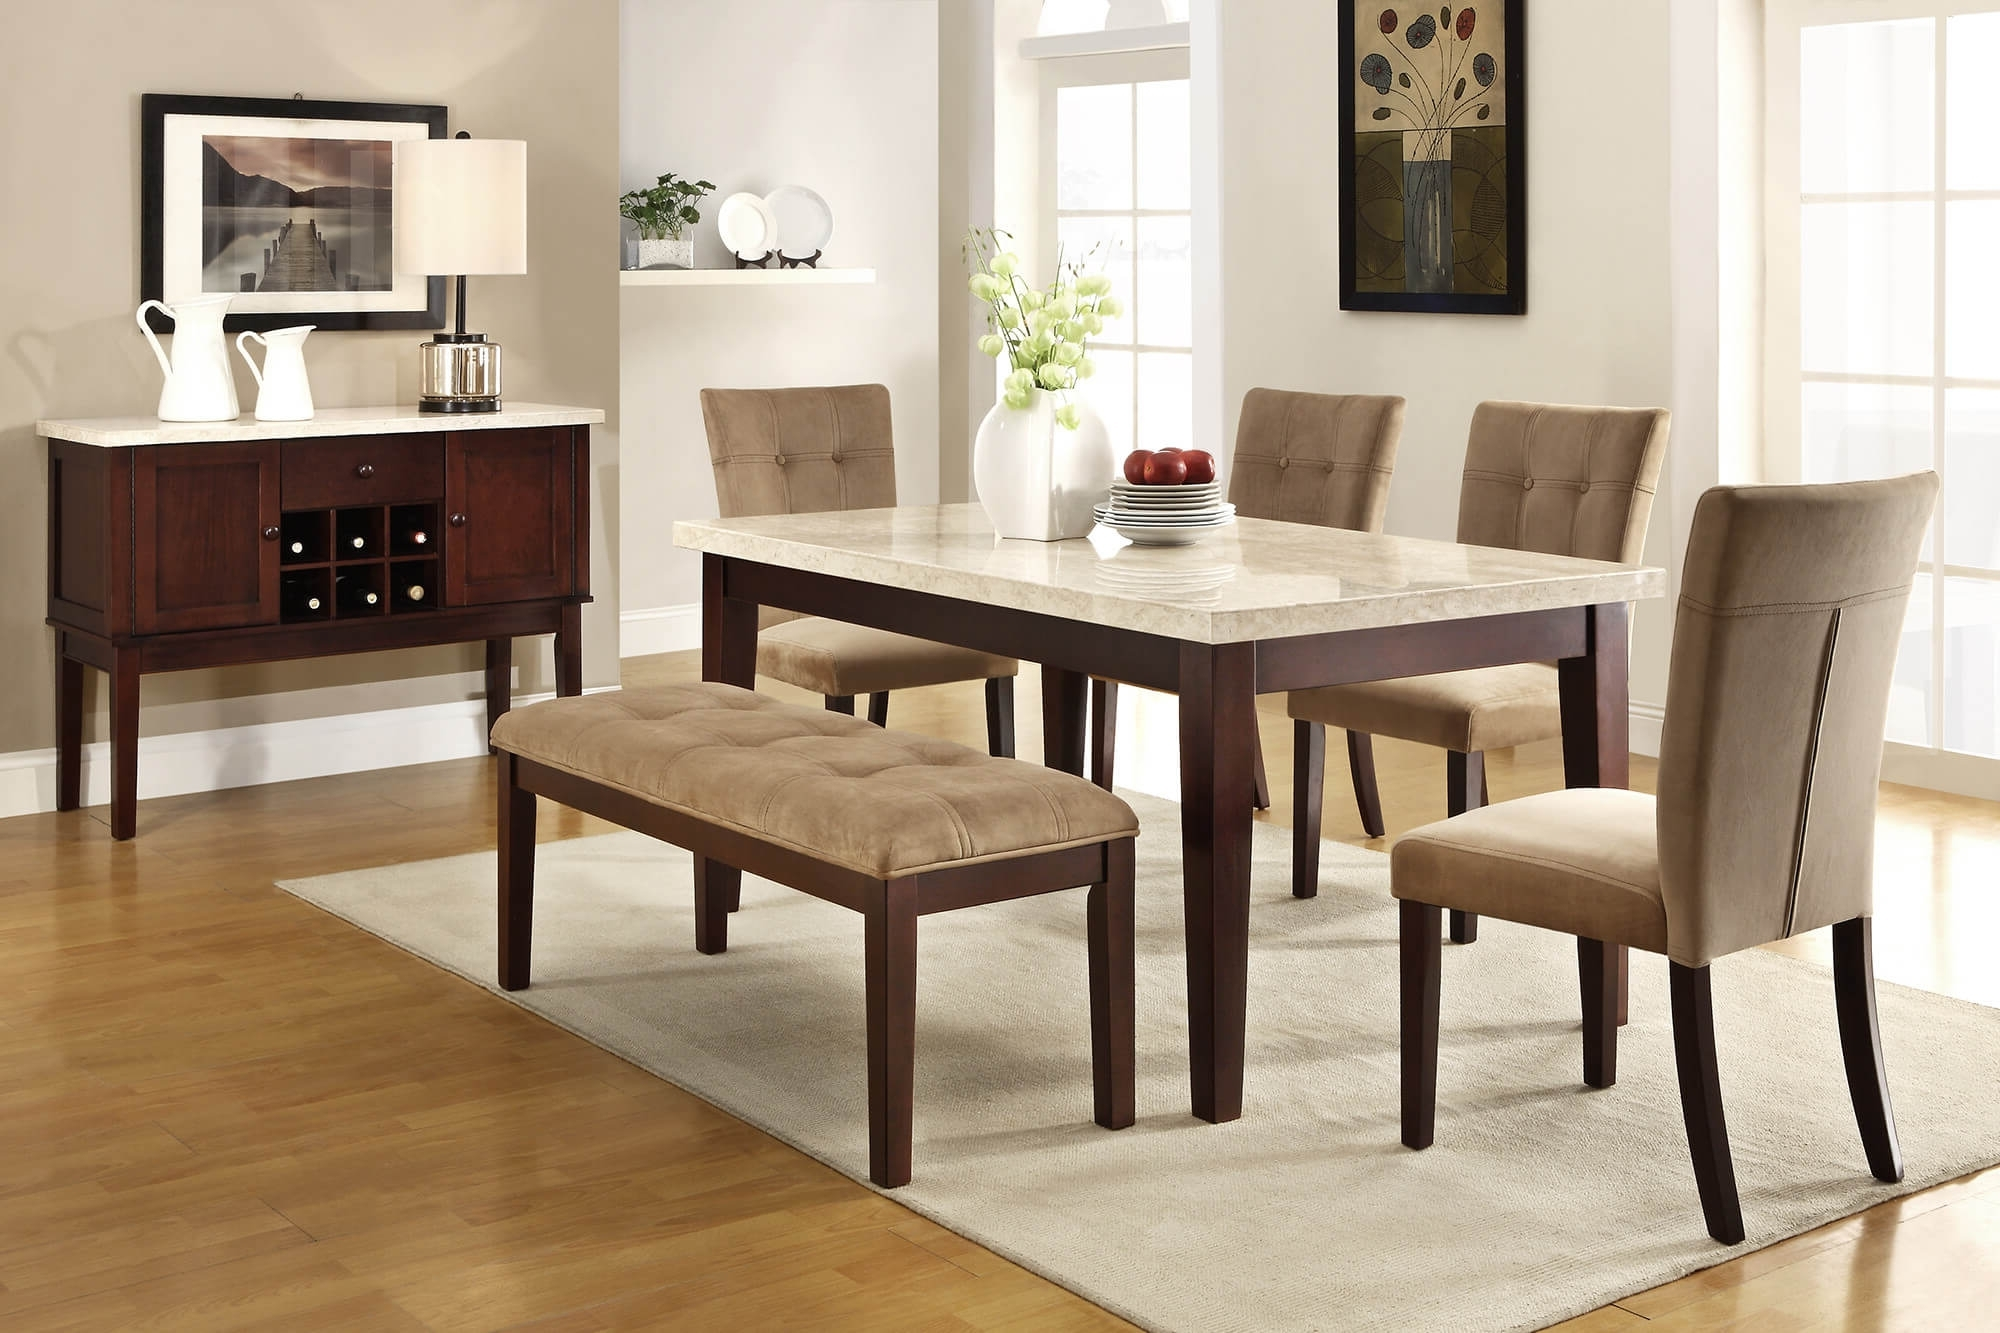 26 Dining Room Sets (Big And Small) With Bench Seating (2018) With Regard To Well Known Cheap Dining Room Chairs (View 13 of 25)